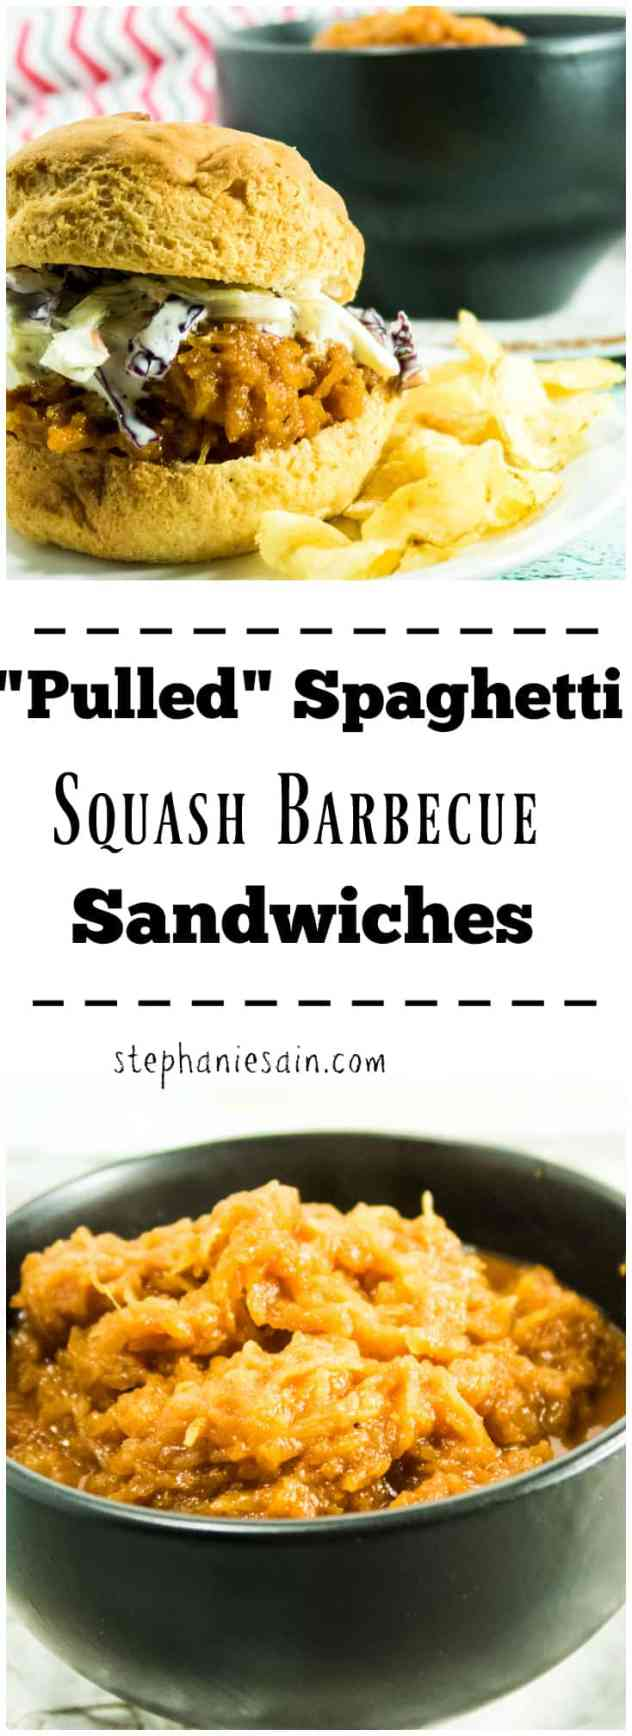 """""""Pulled"""" Spaghetti Squash Barbecue Sandwiches are a tasty, vegetarian or vegan option for your next cookout. Slow cooked with homemade BBQ sauce and served with your favorite toppings. Gluten free, Vegetarian, and Vegan option."""